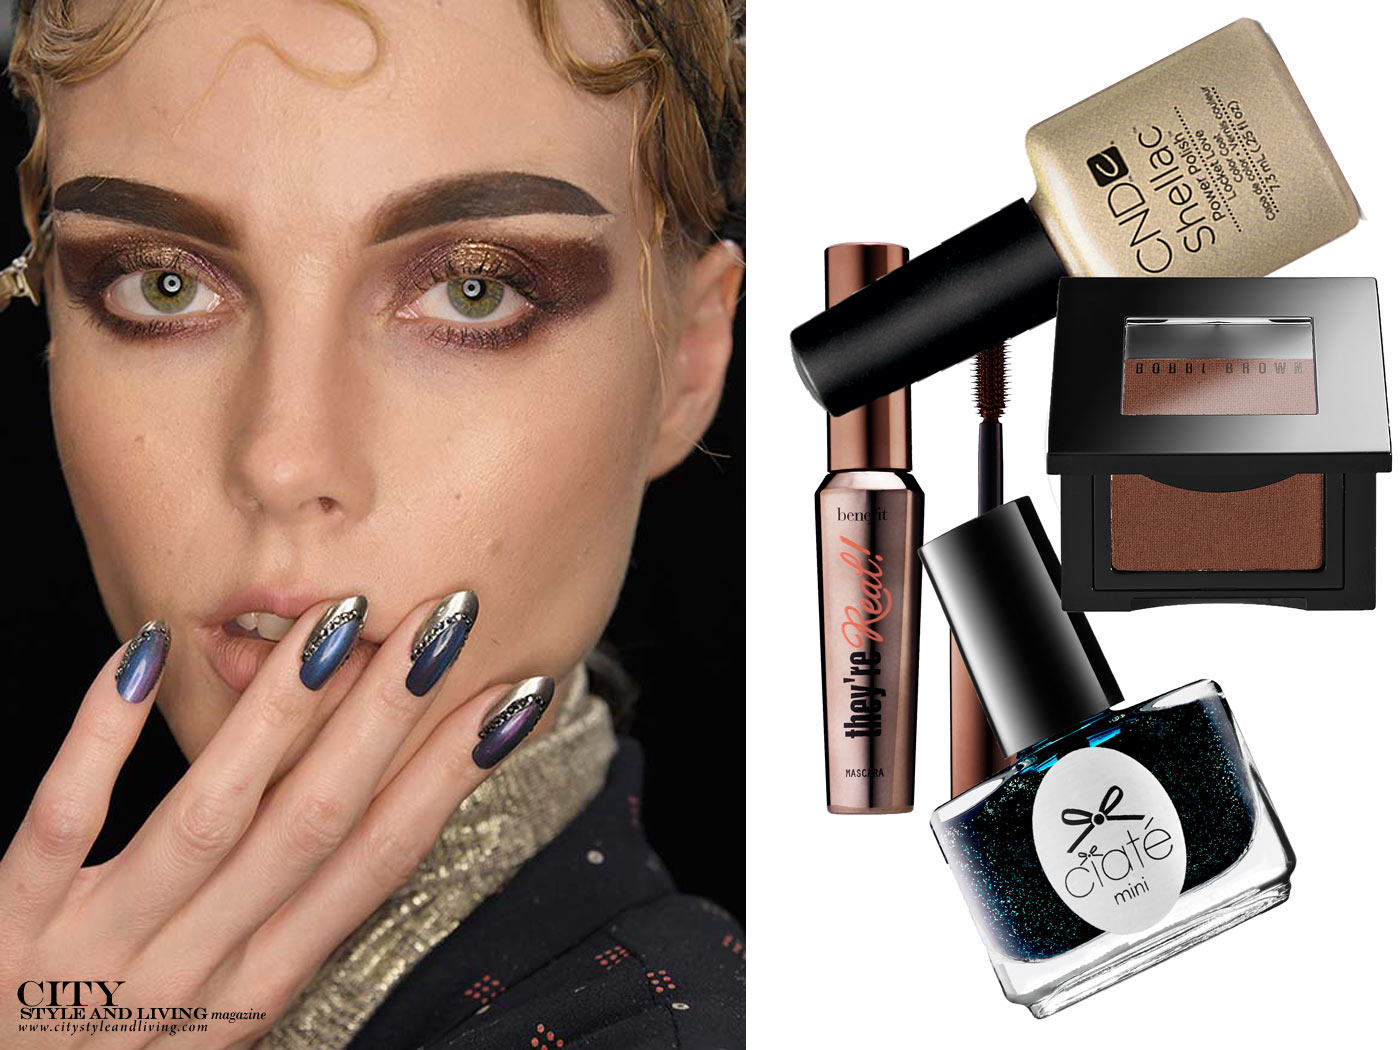 of City Style and Living Magazine Subtle Glitz Makeup for Fall 2017